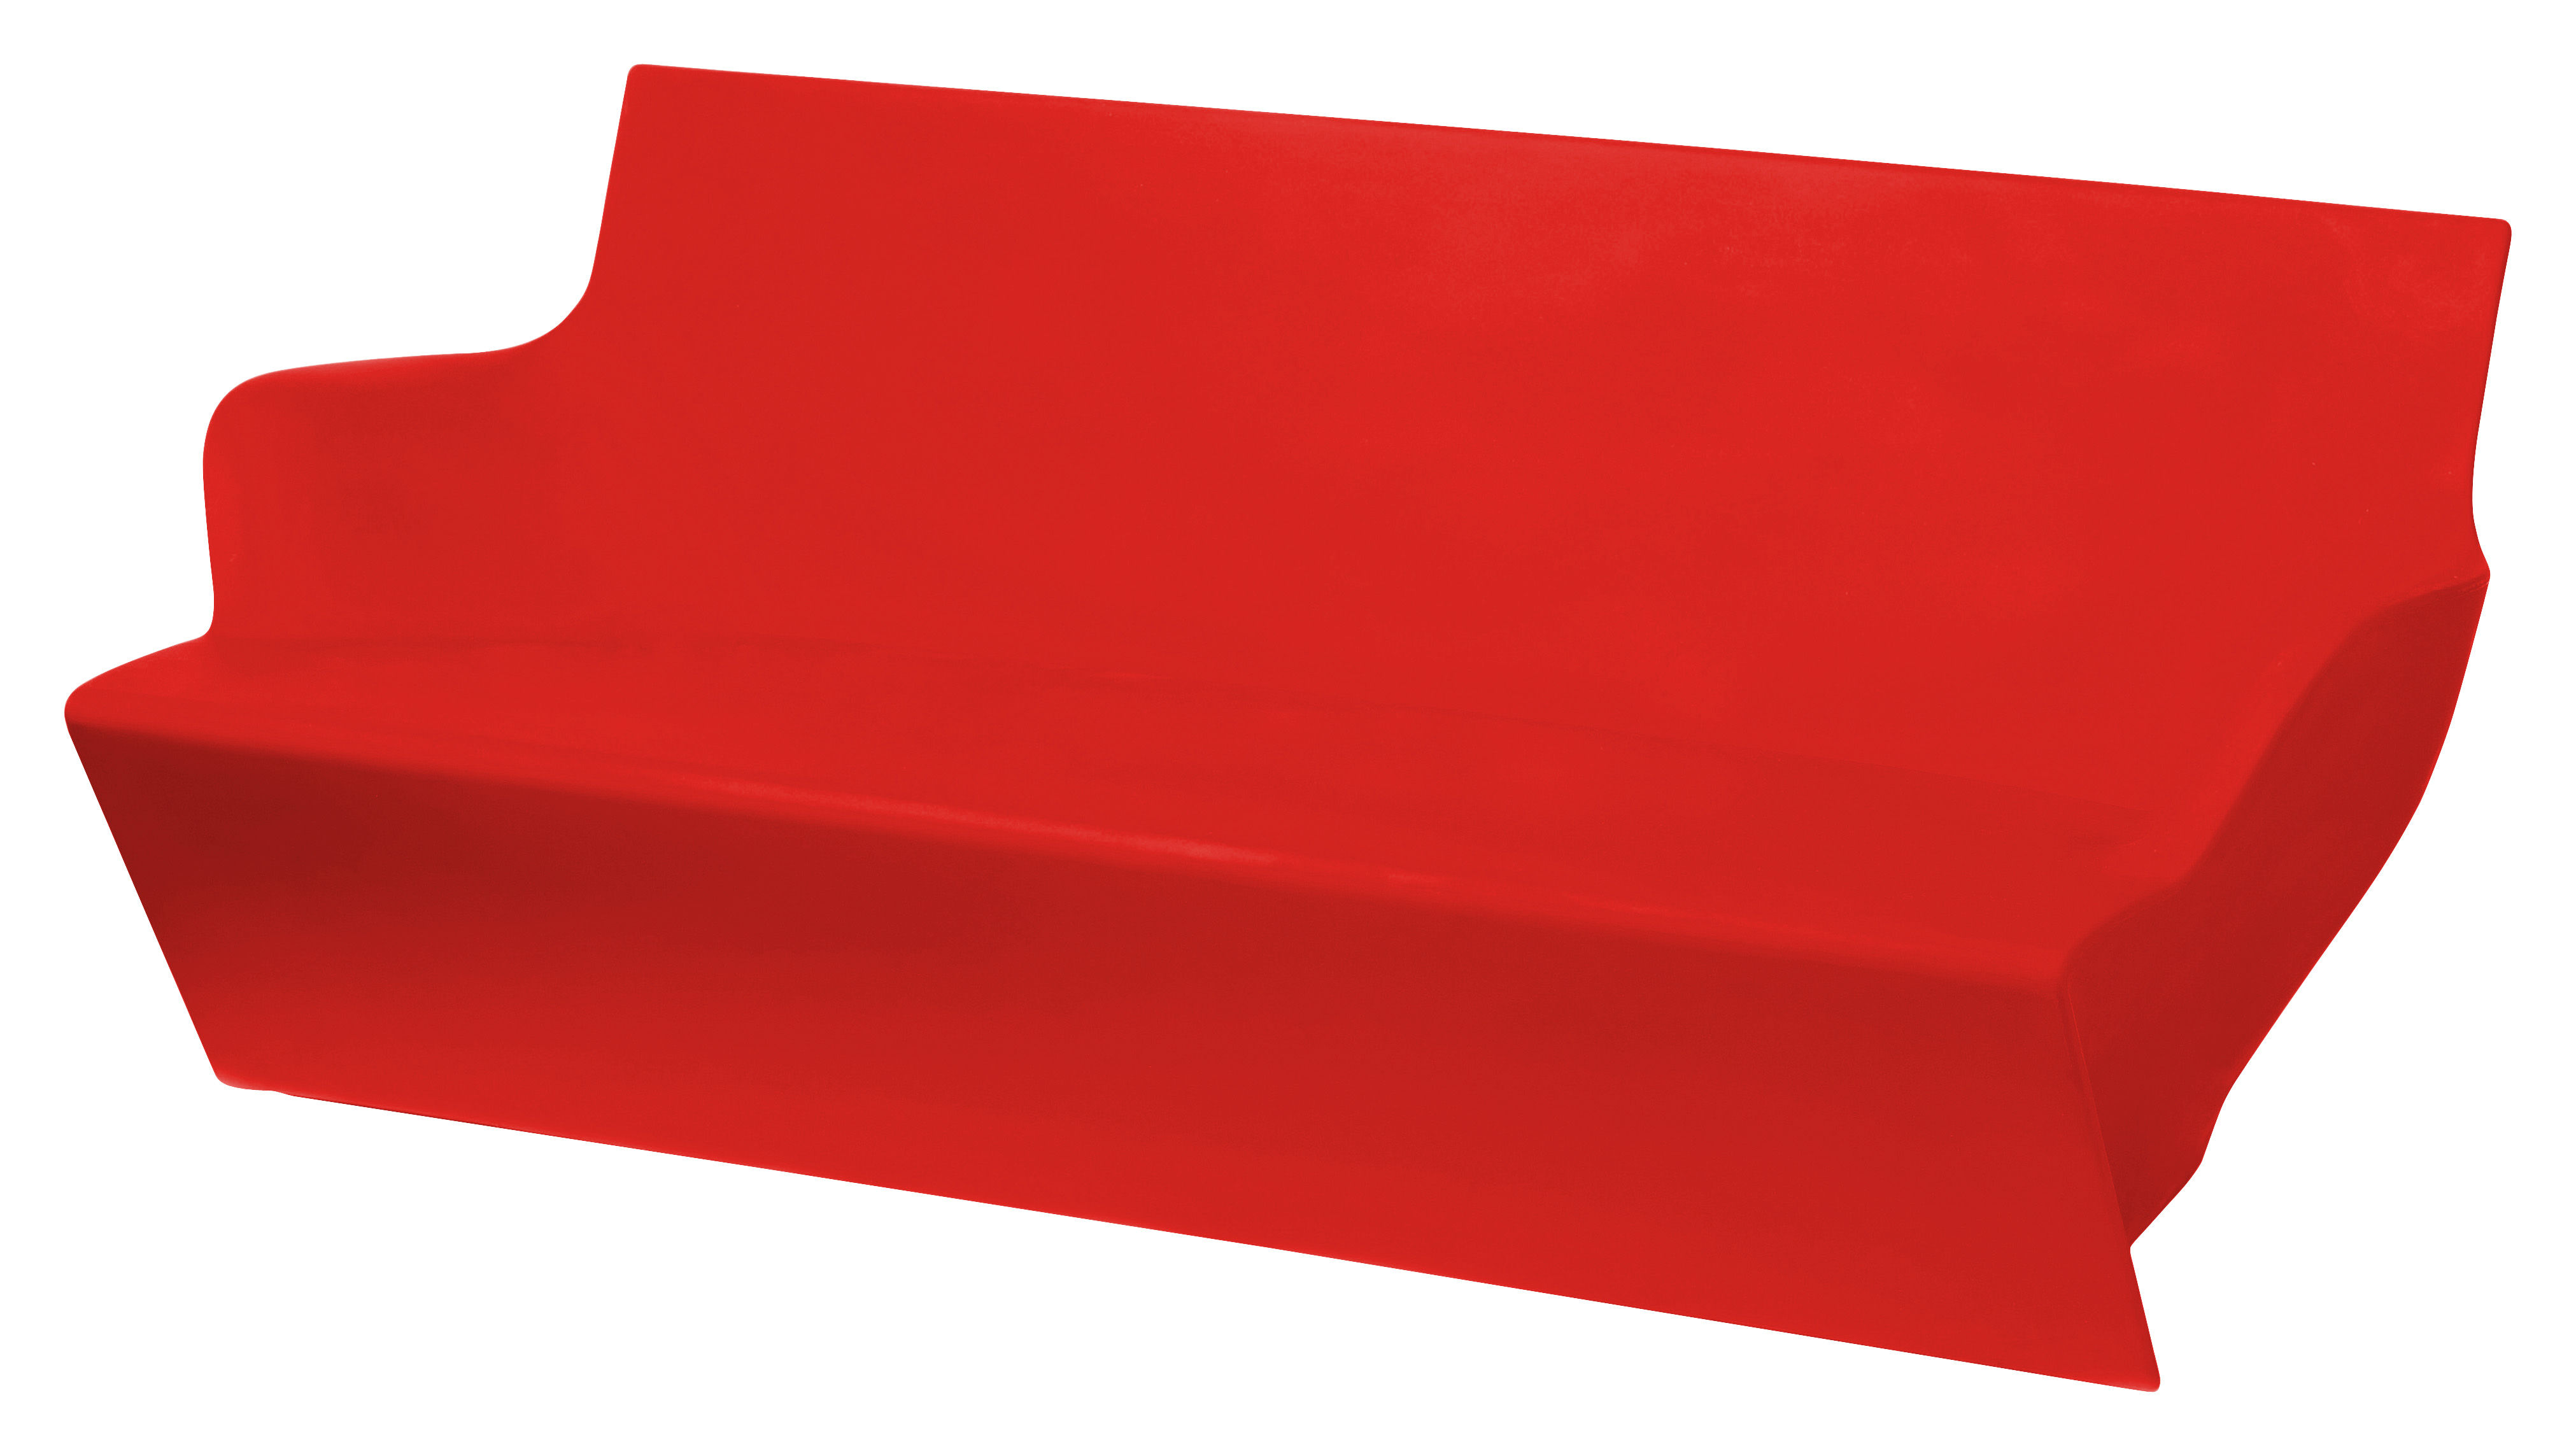 Outdoor - Sofas - Kami Yon Sofa by Slide - Red - recyclable polyethylene